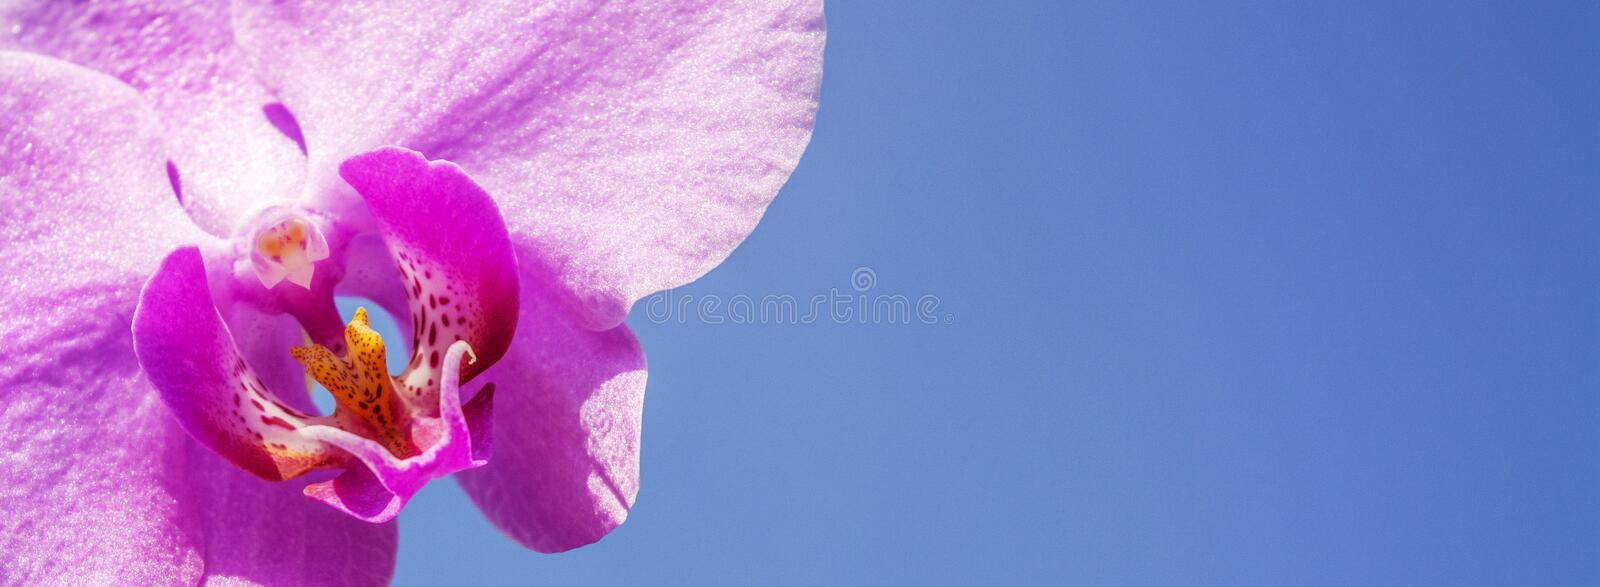 Flower of wild orchid on a background of blue sky, close-up royalty free stock images